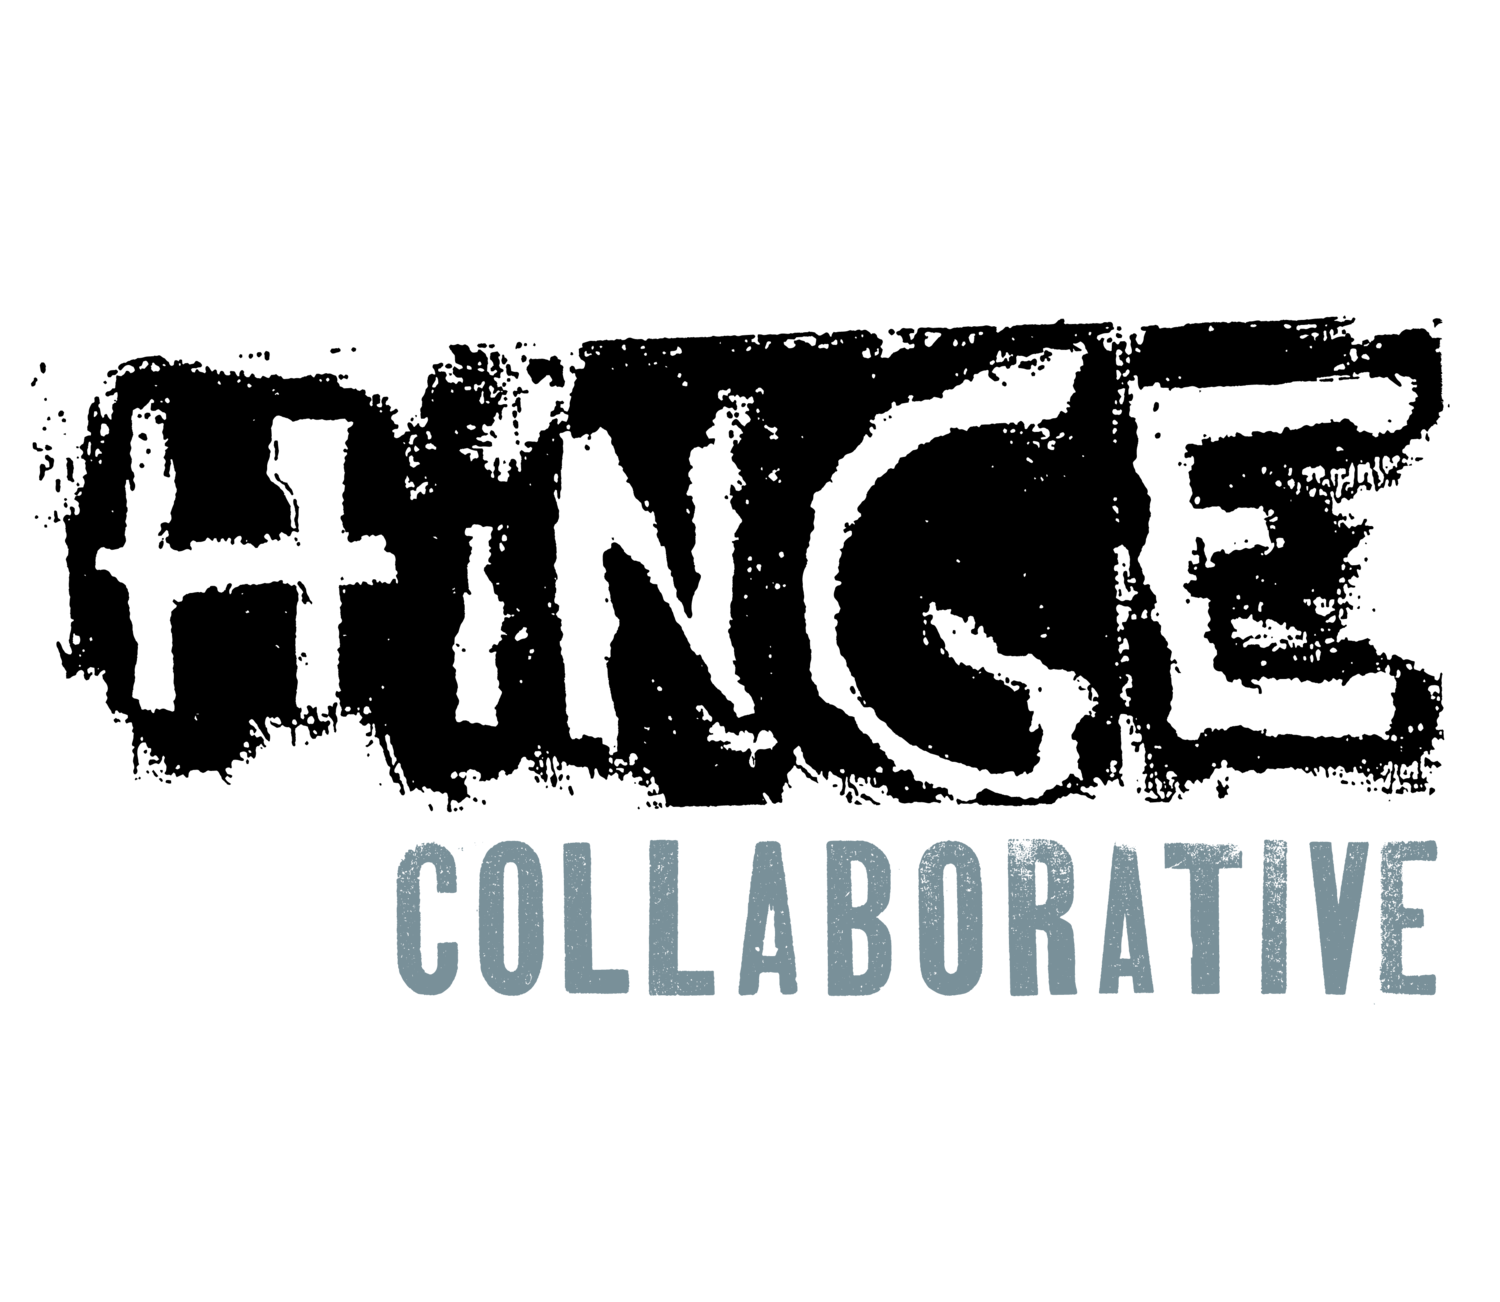 Hinge Collaborative